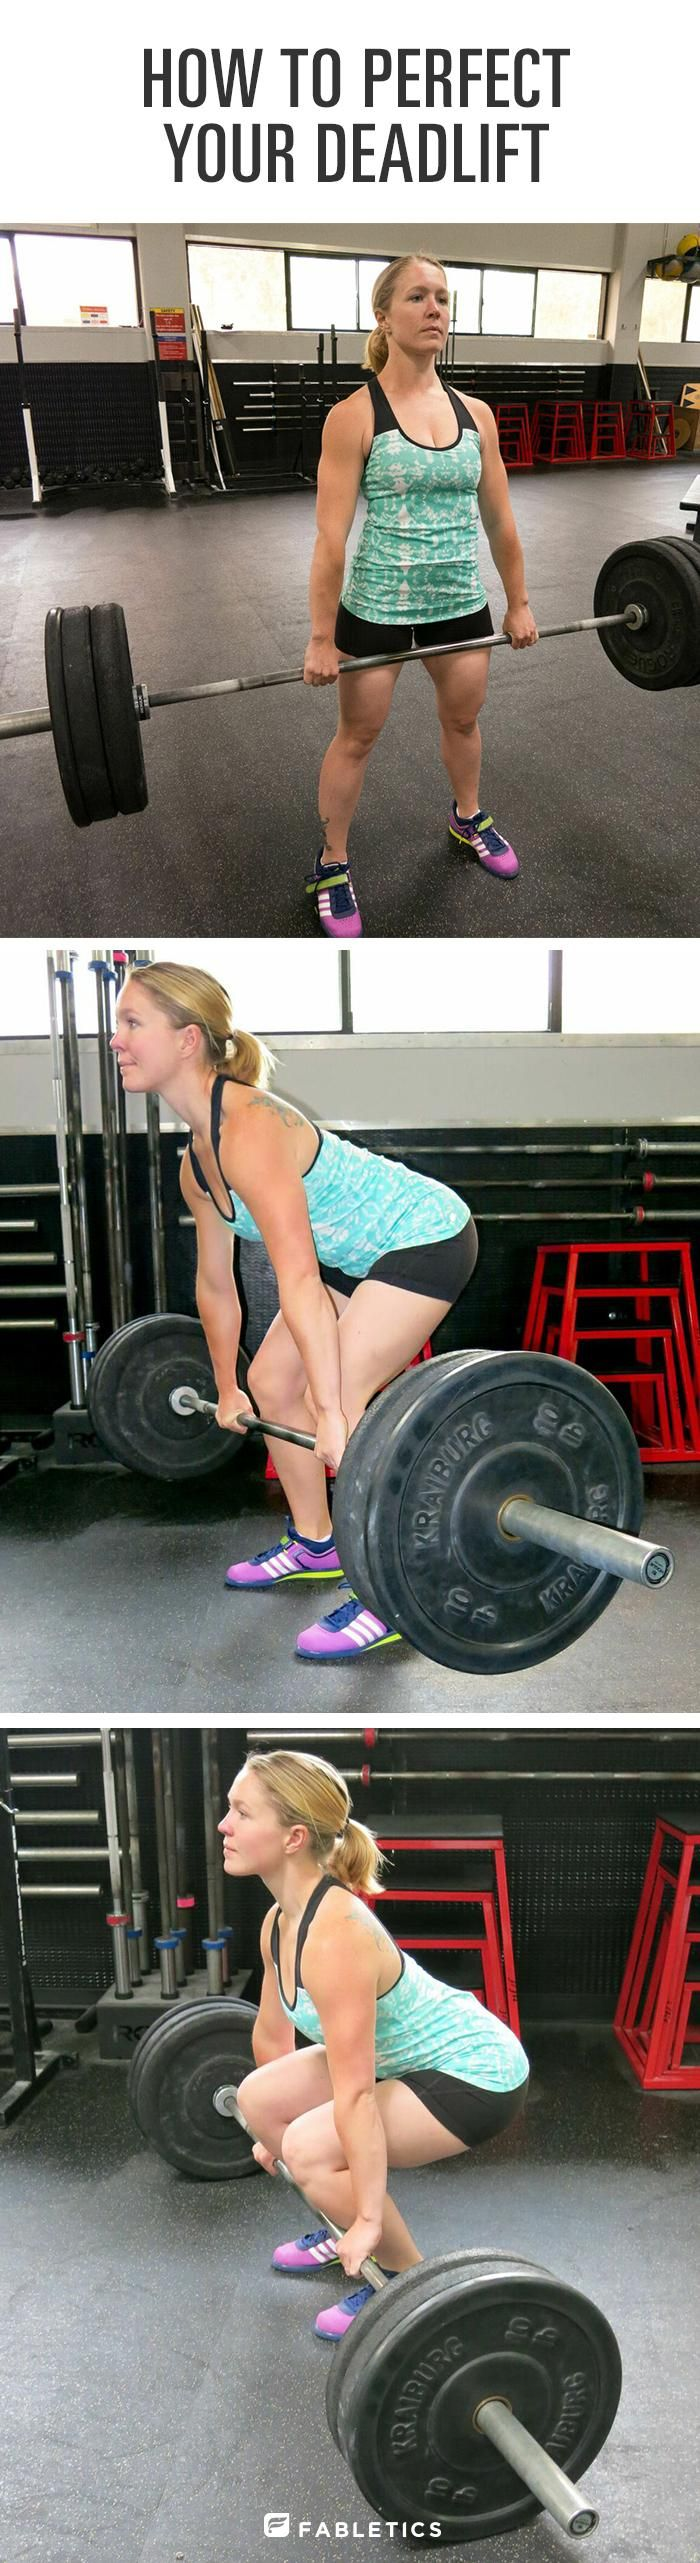 Deadlifting is an amazing all over body workout. Don't be intimidated, find the proper form here!